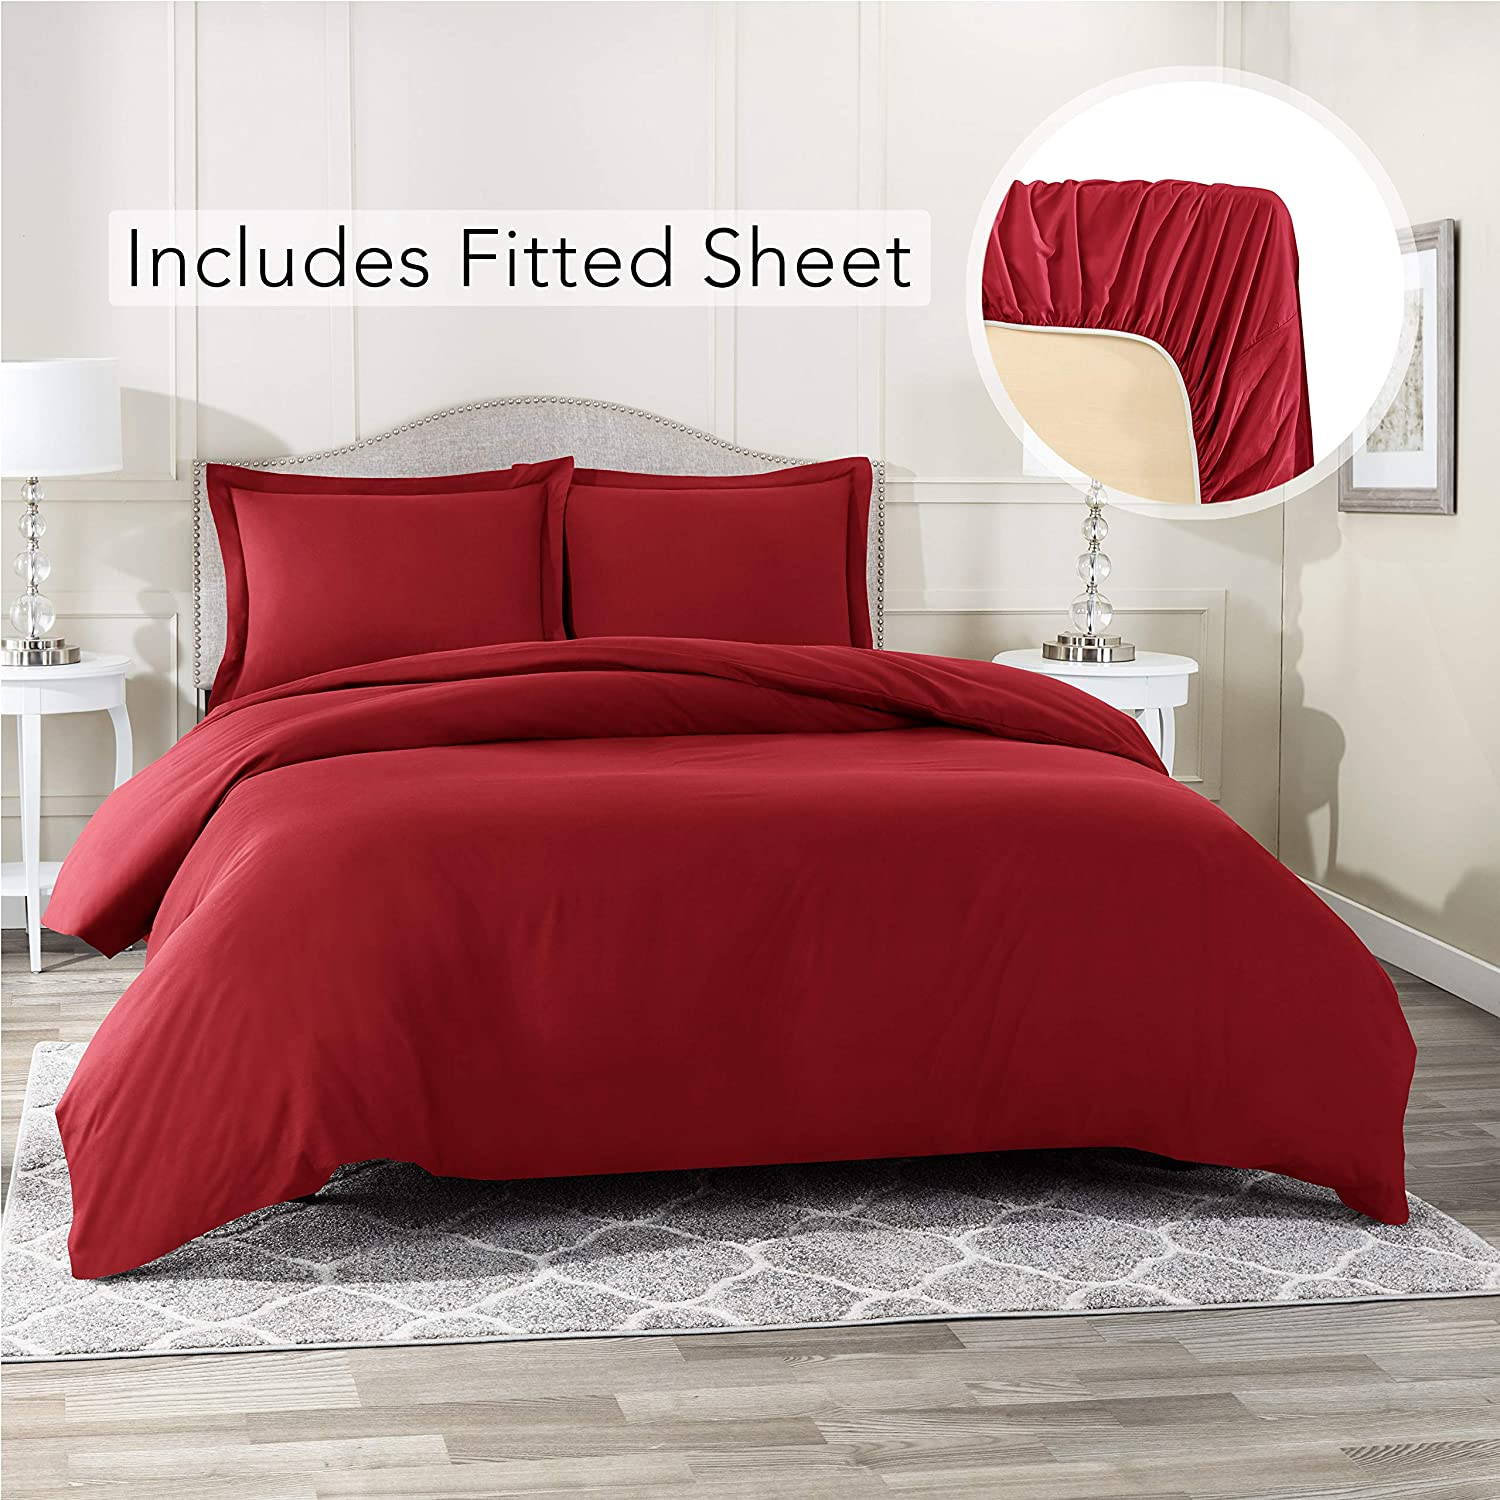 Nestl Bedding Duvet Cover with Fitted Sheet 4 Piece Set - Soft Double Brushed Microfiber Hotel Collection - Comforter Cover with Button Closure, Fitted Sheet, 2 Pillow Shams, Cal King - Burgundy